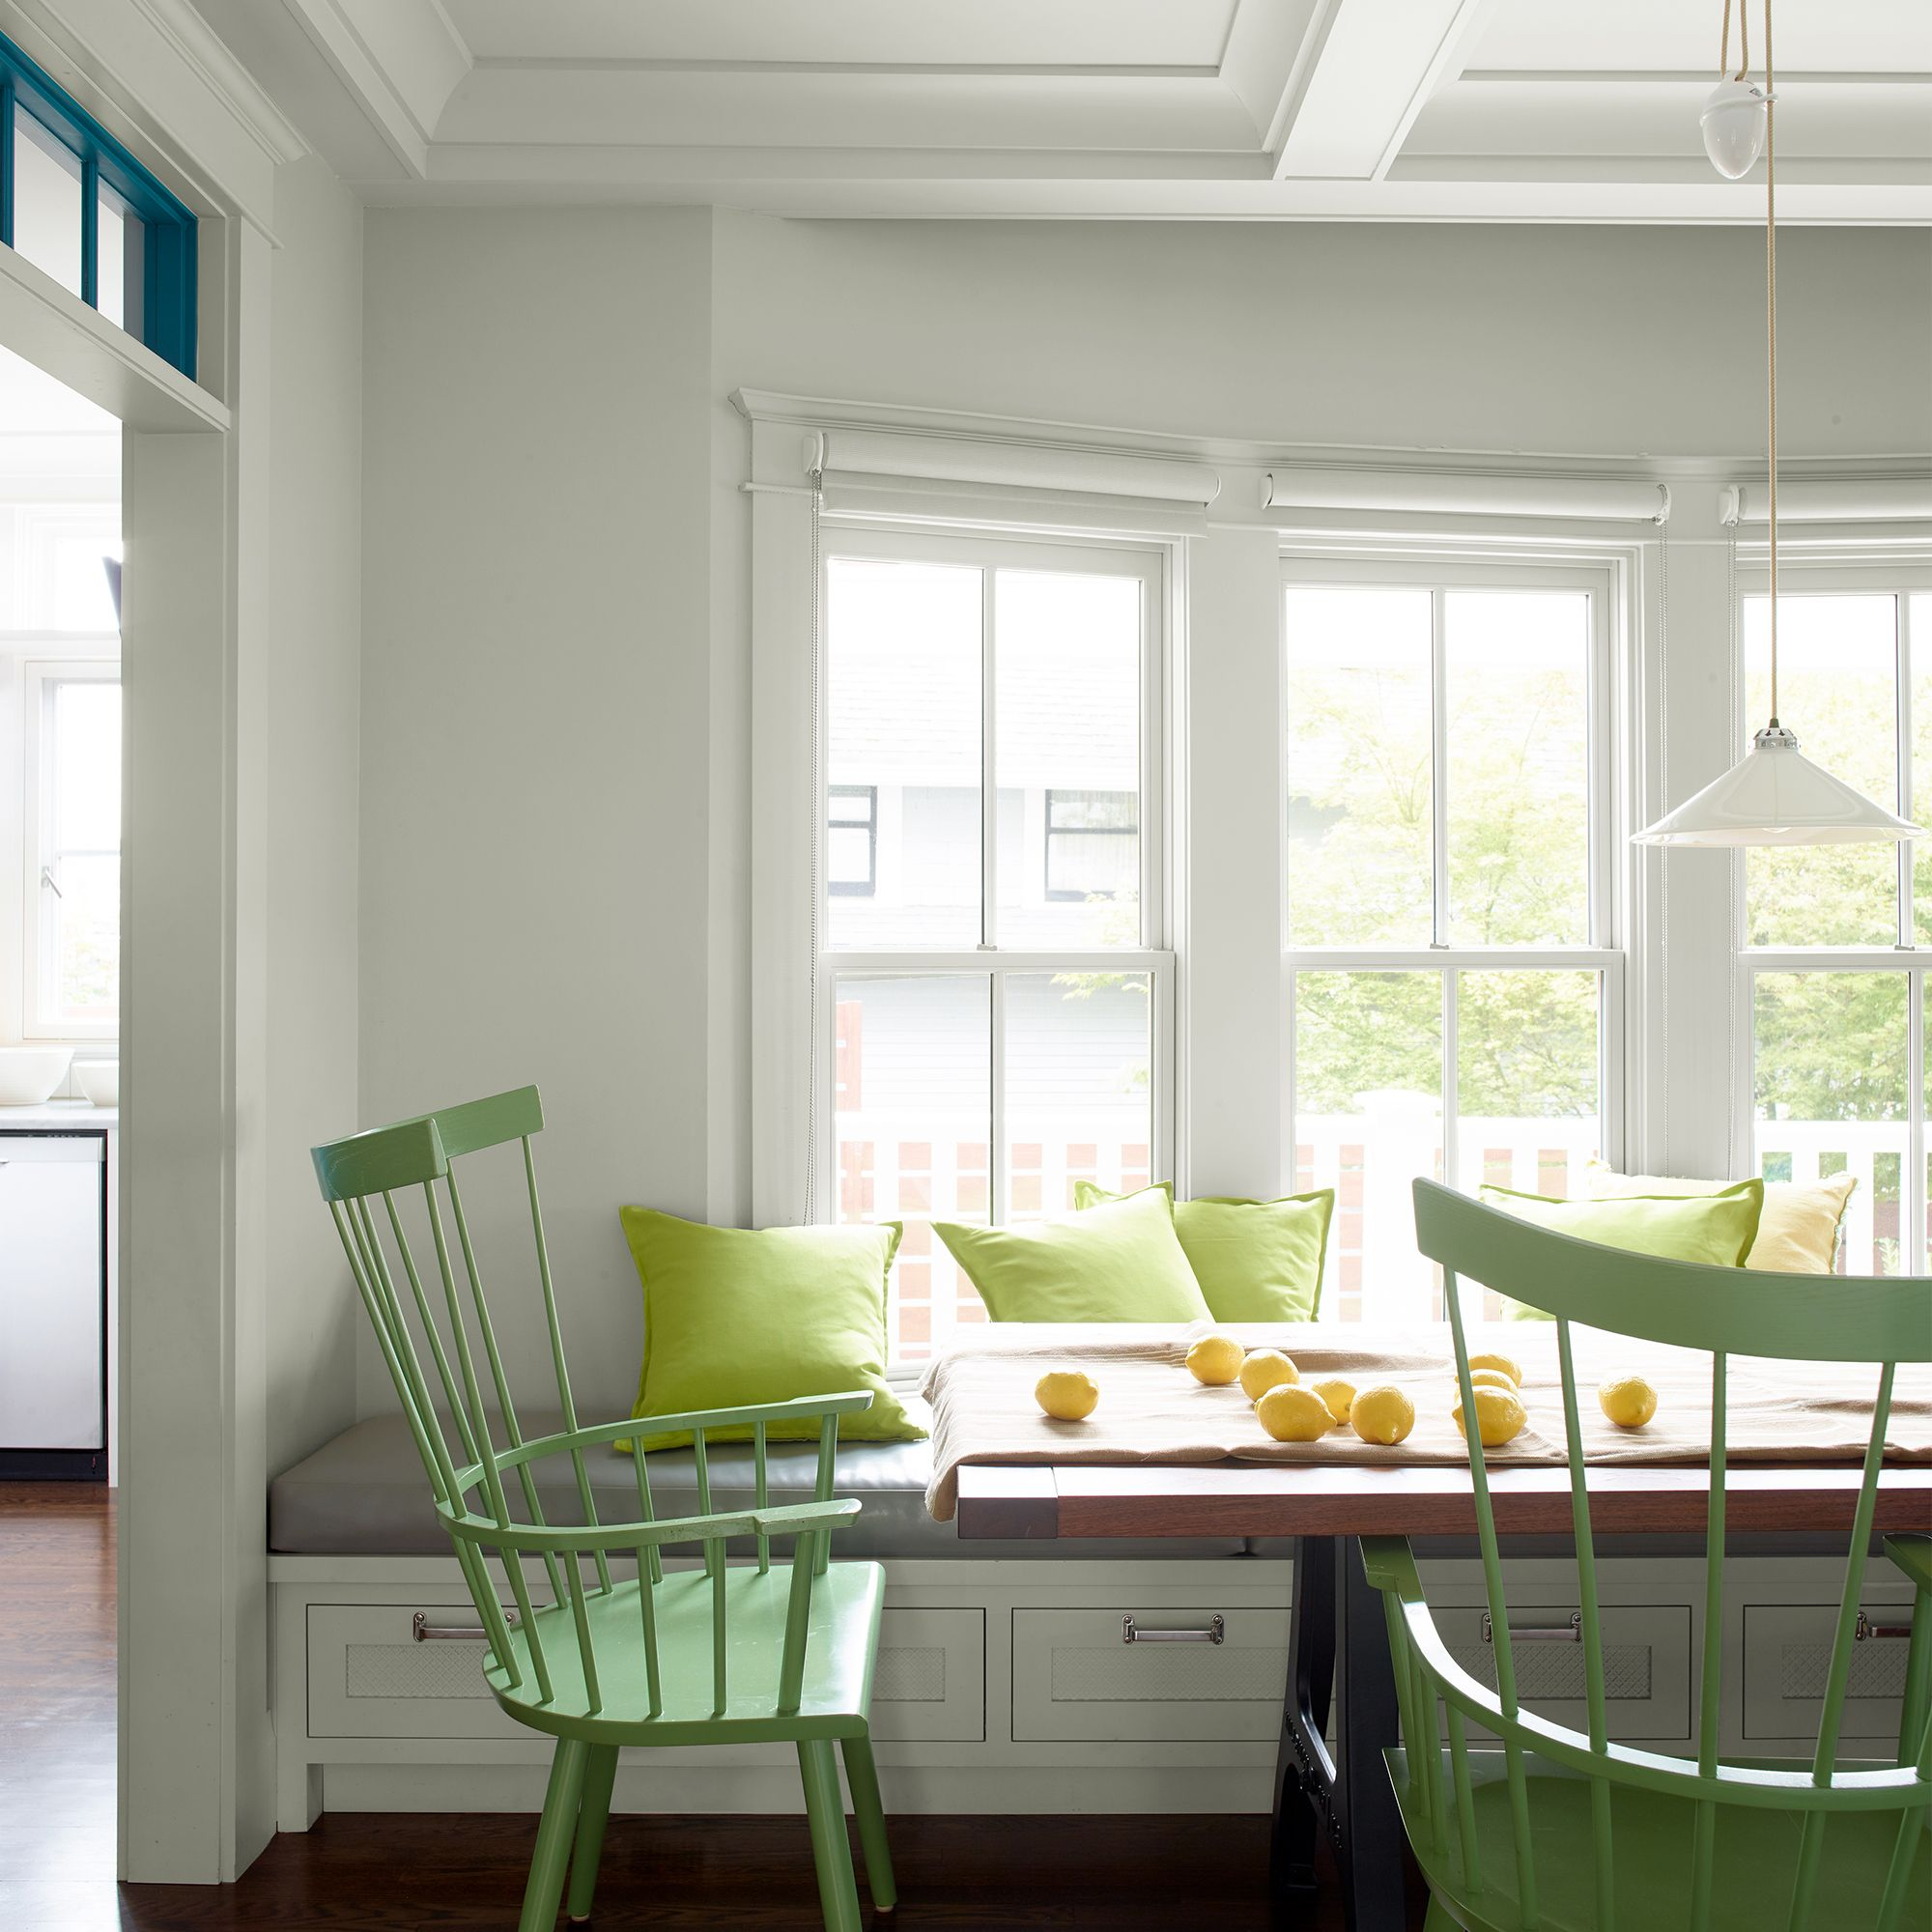 Dining Room with Bay Window and Green Chairs